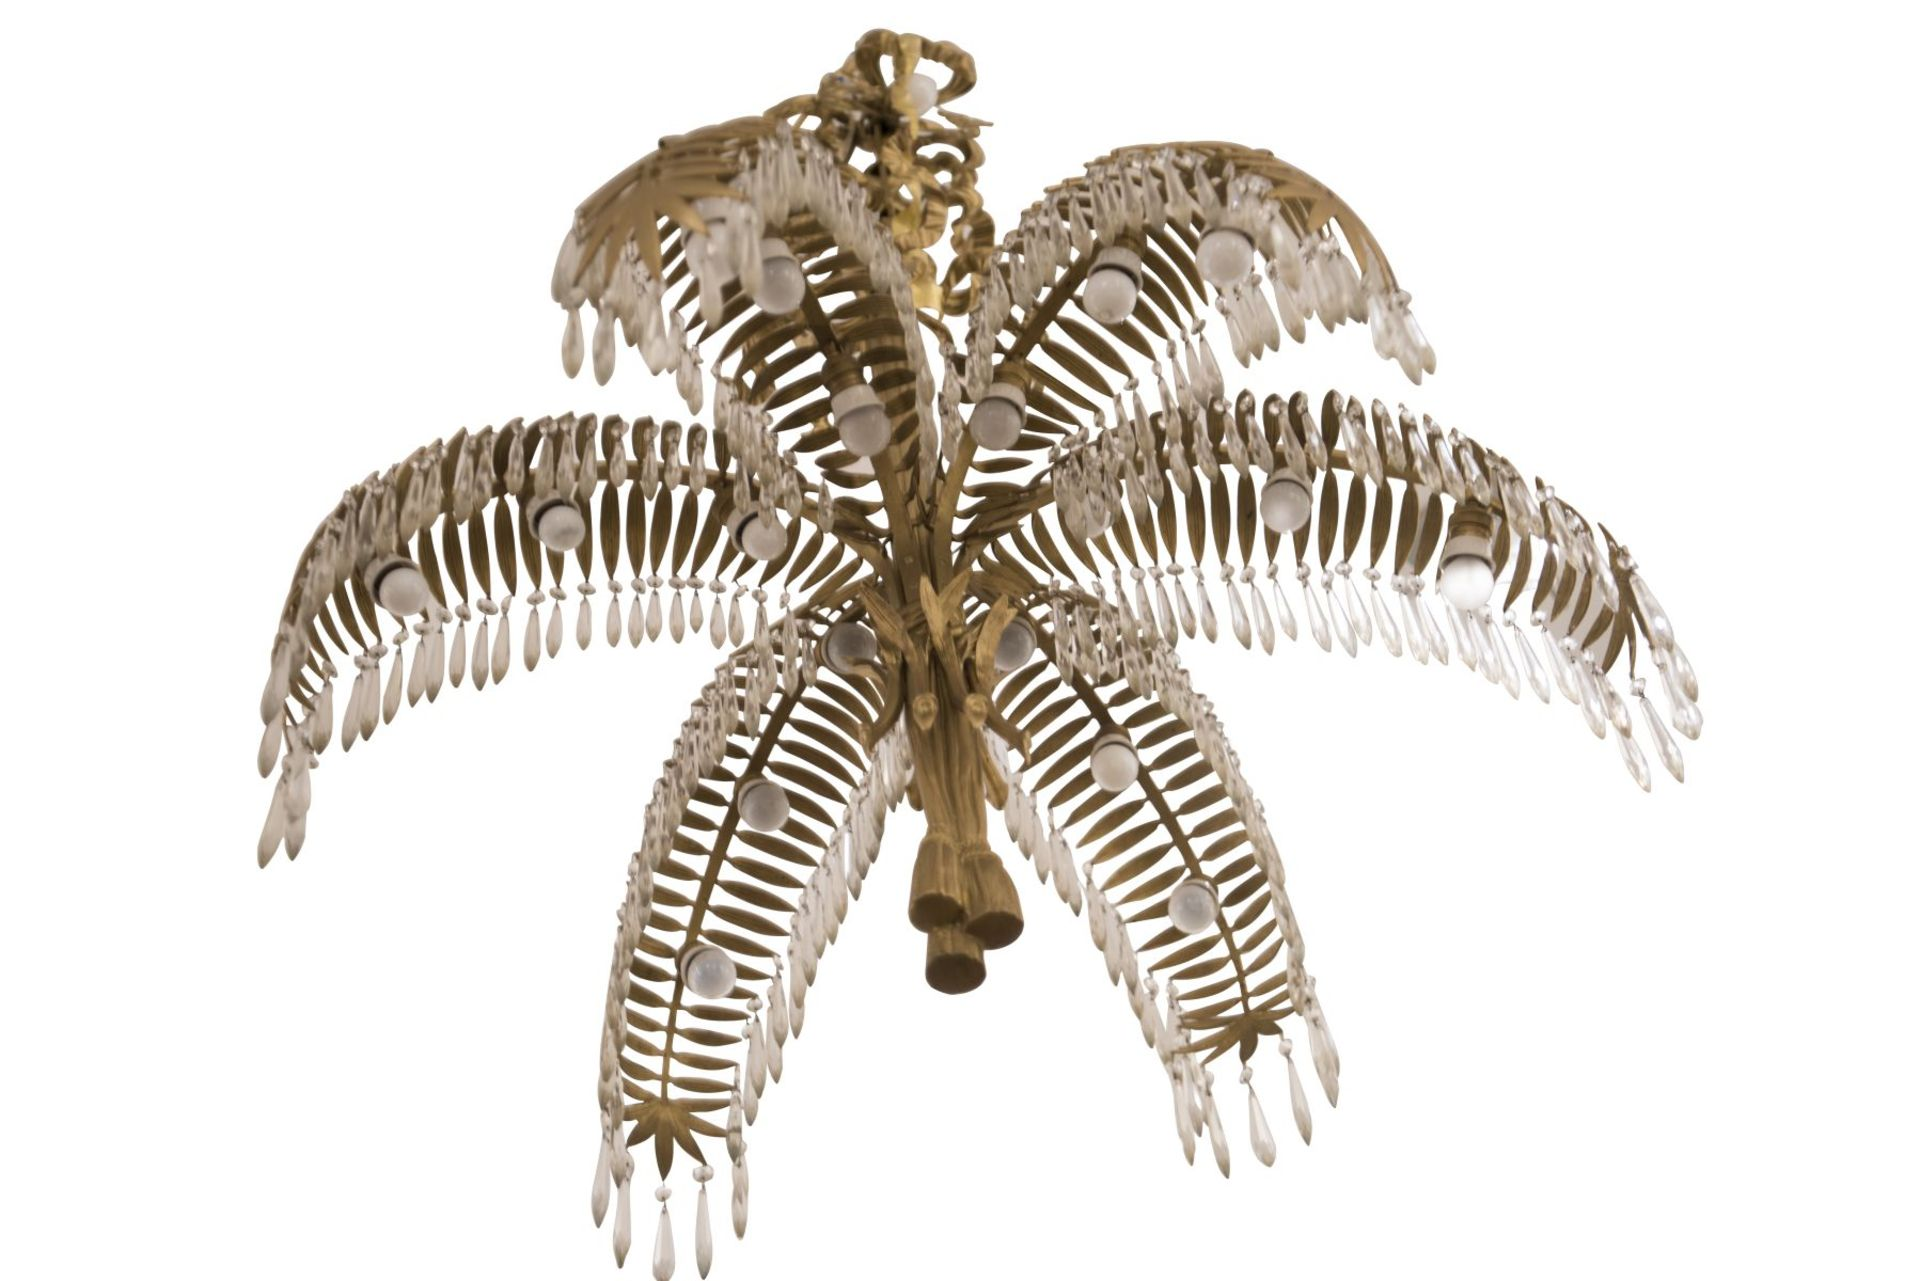 Salon Chandelier, Palm Chandelier by Hoffman for Bakalowits & Söhne, 1970s - Image 5 of 6